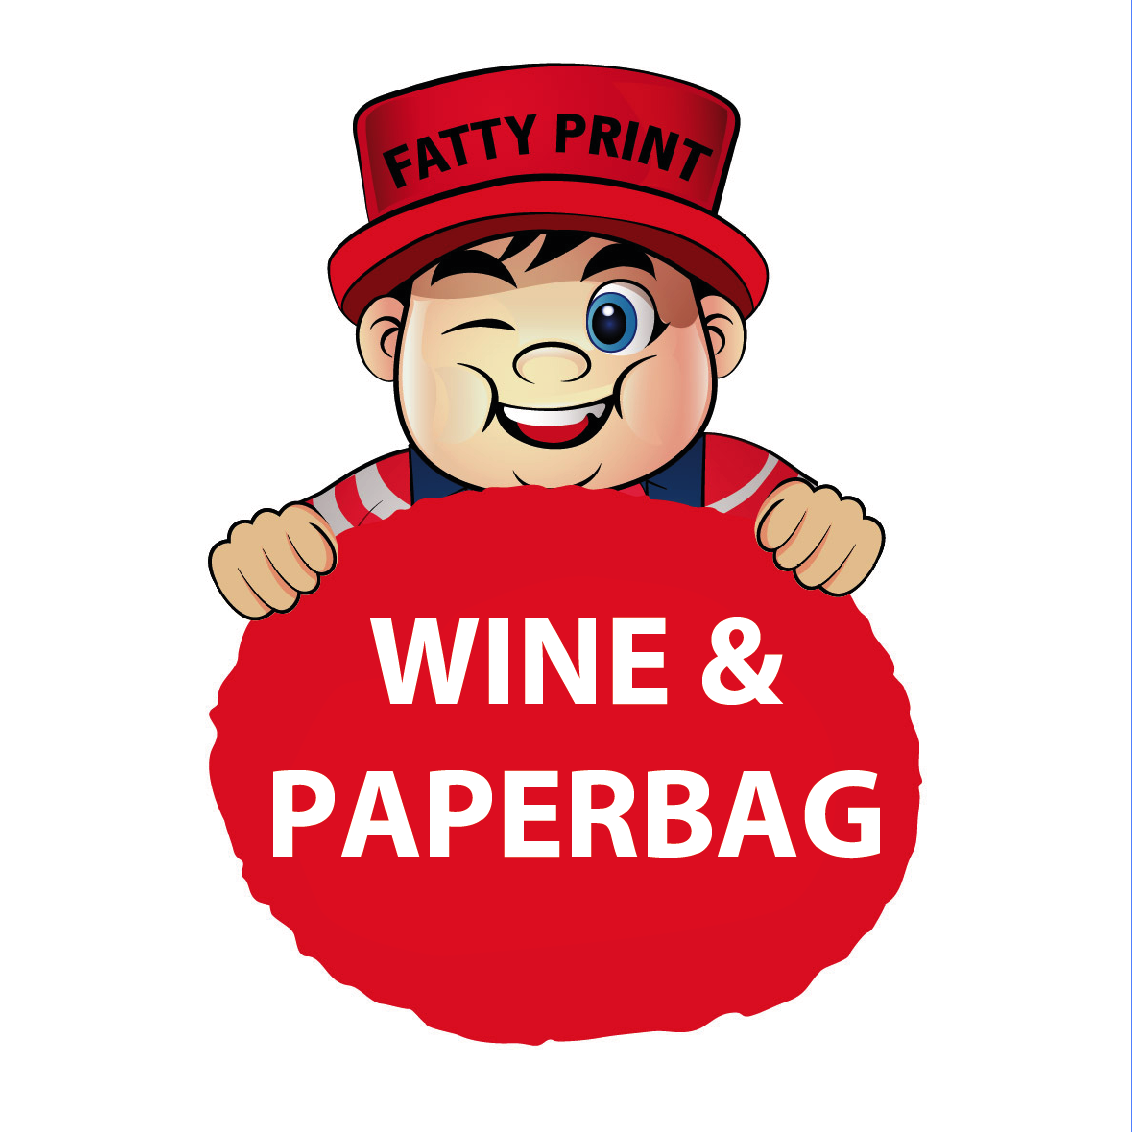 Wine Memento (Red Wine and Paper Bag)